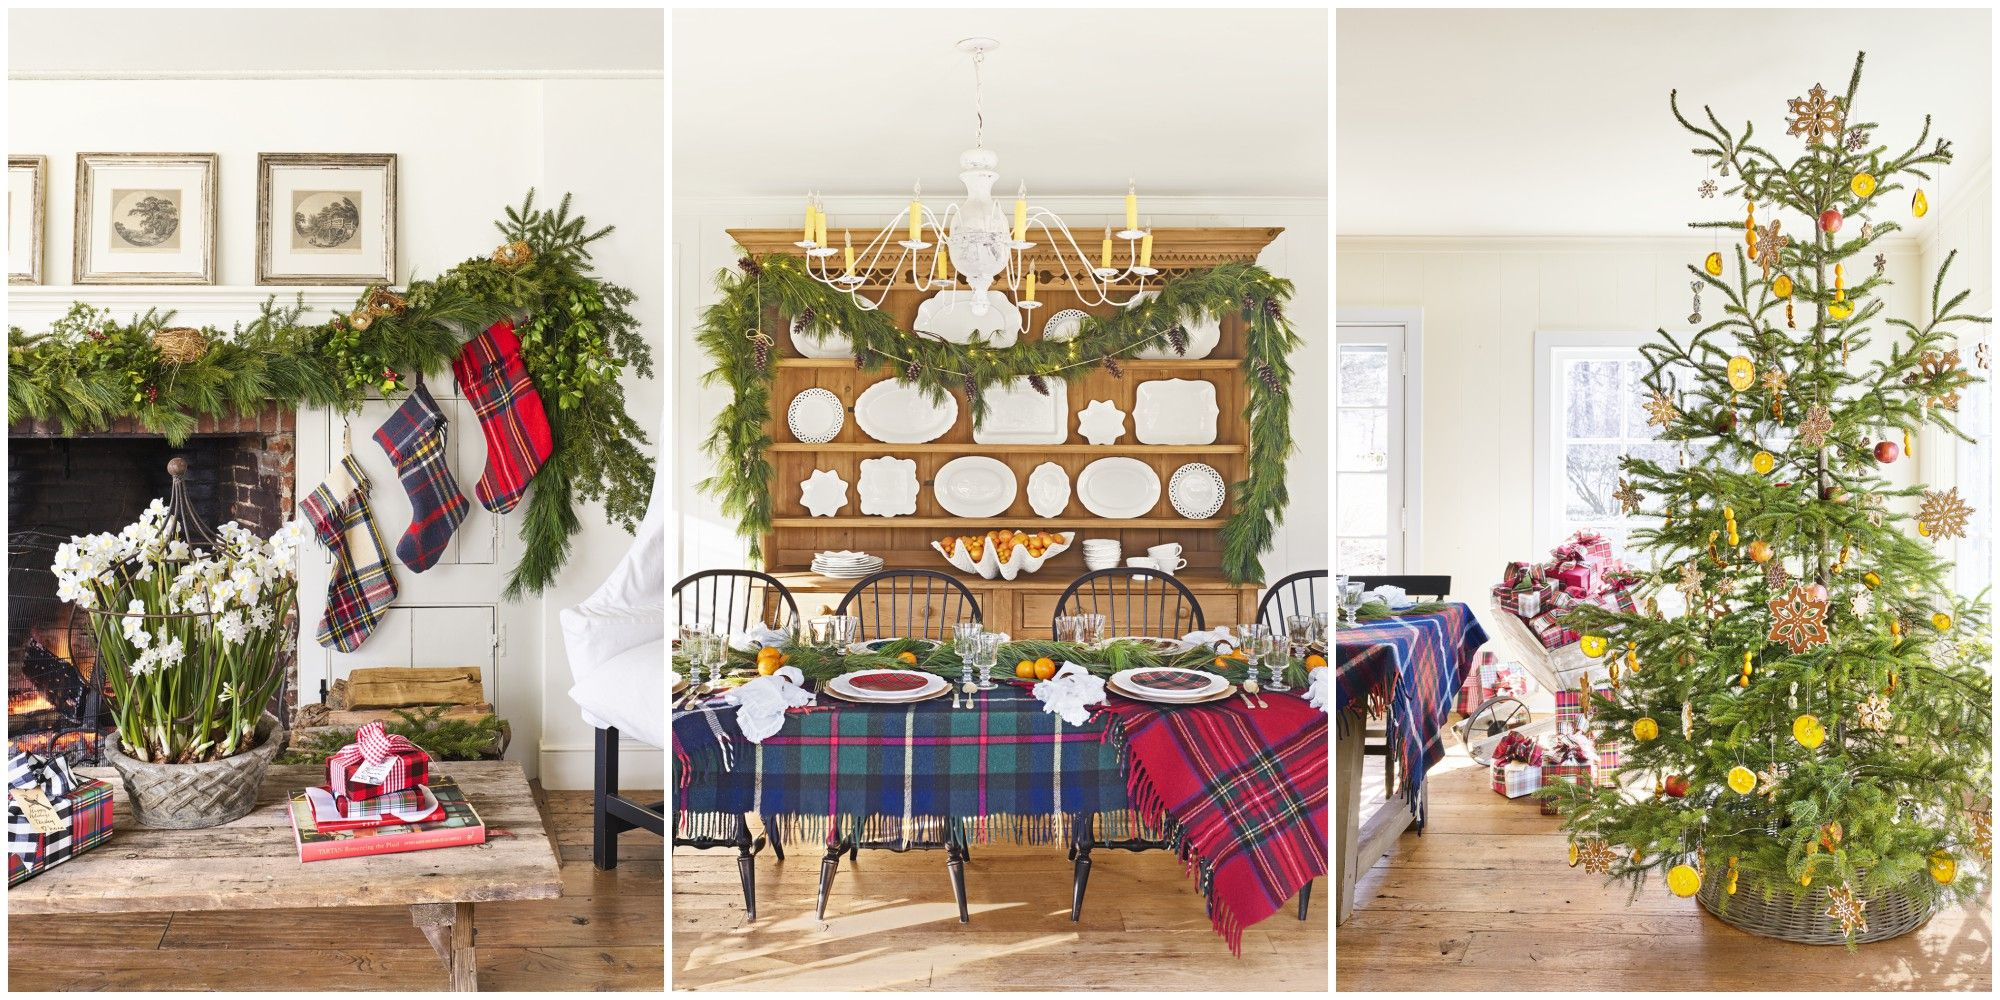 Christmas Escapes 2020 Connecticut Peek Inside Nora Murphy's Connecticut Home That's 'Mad for Plaid